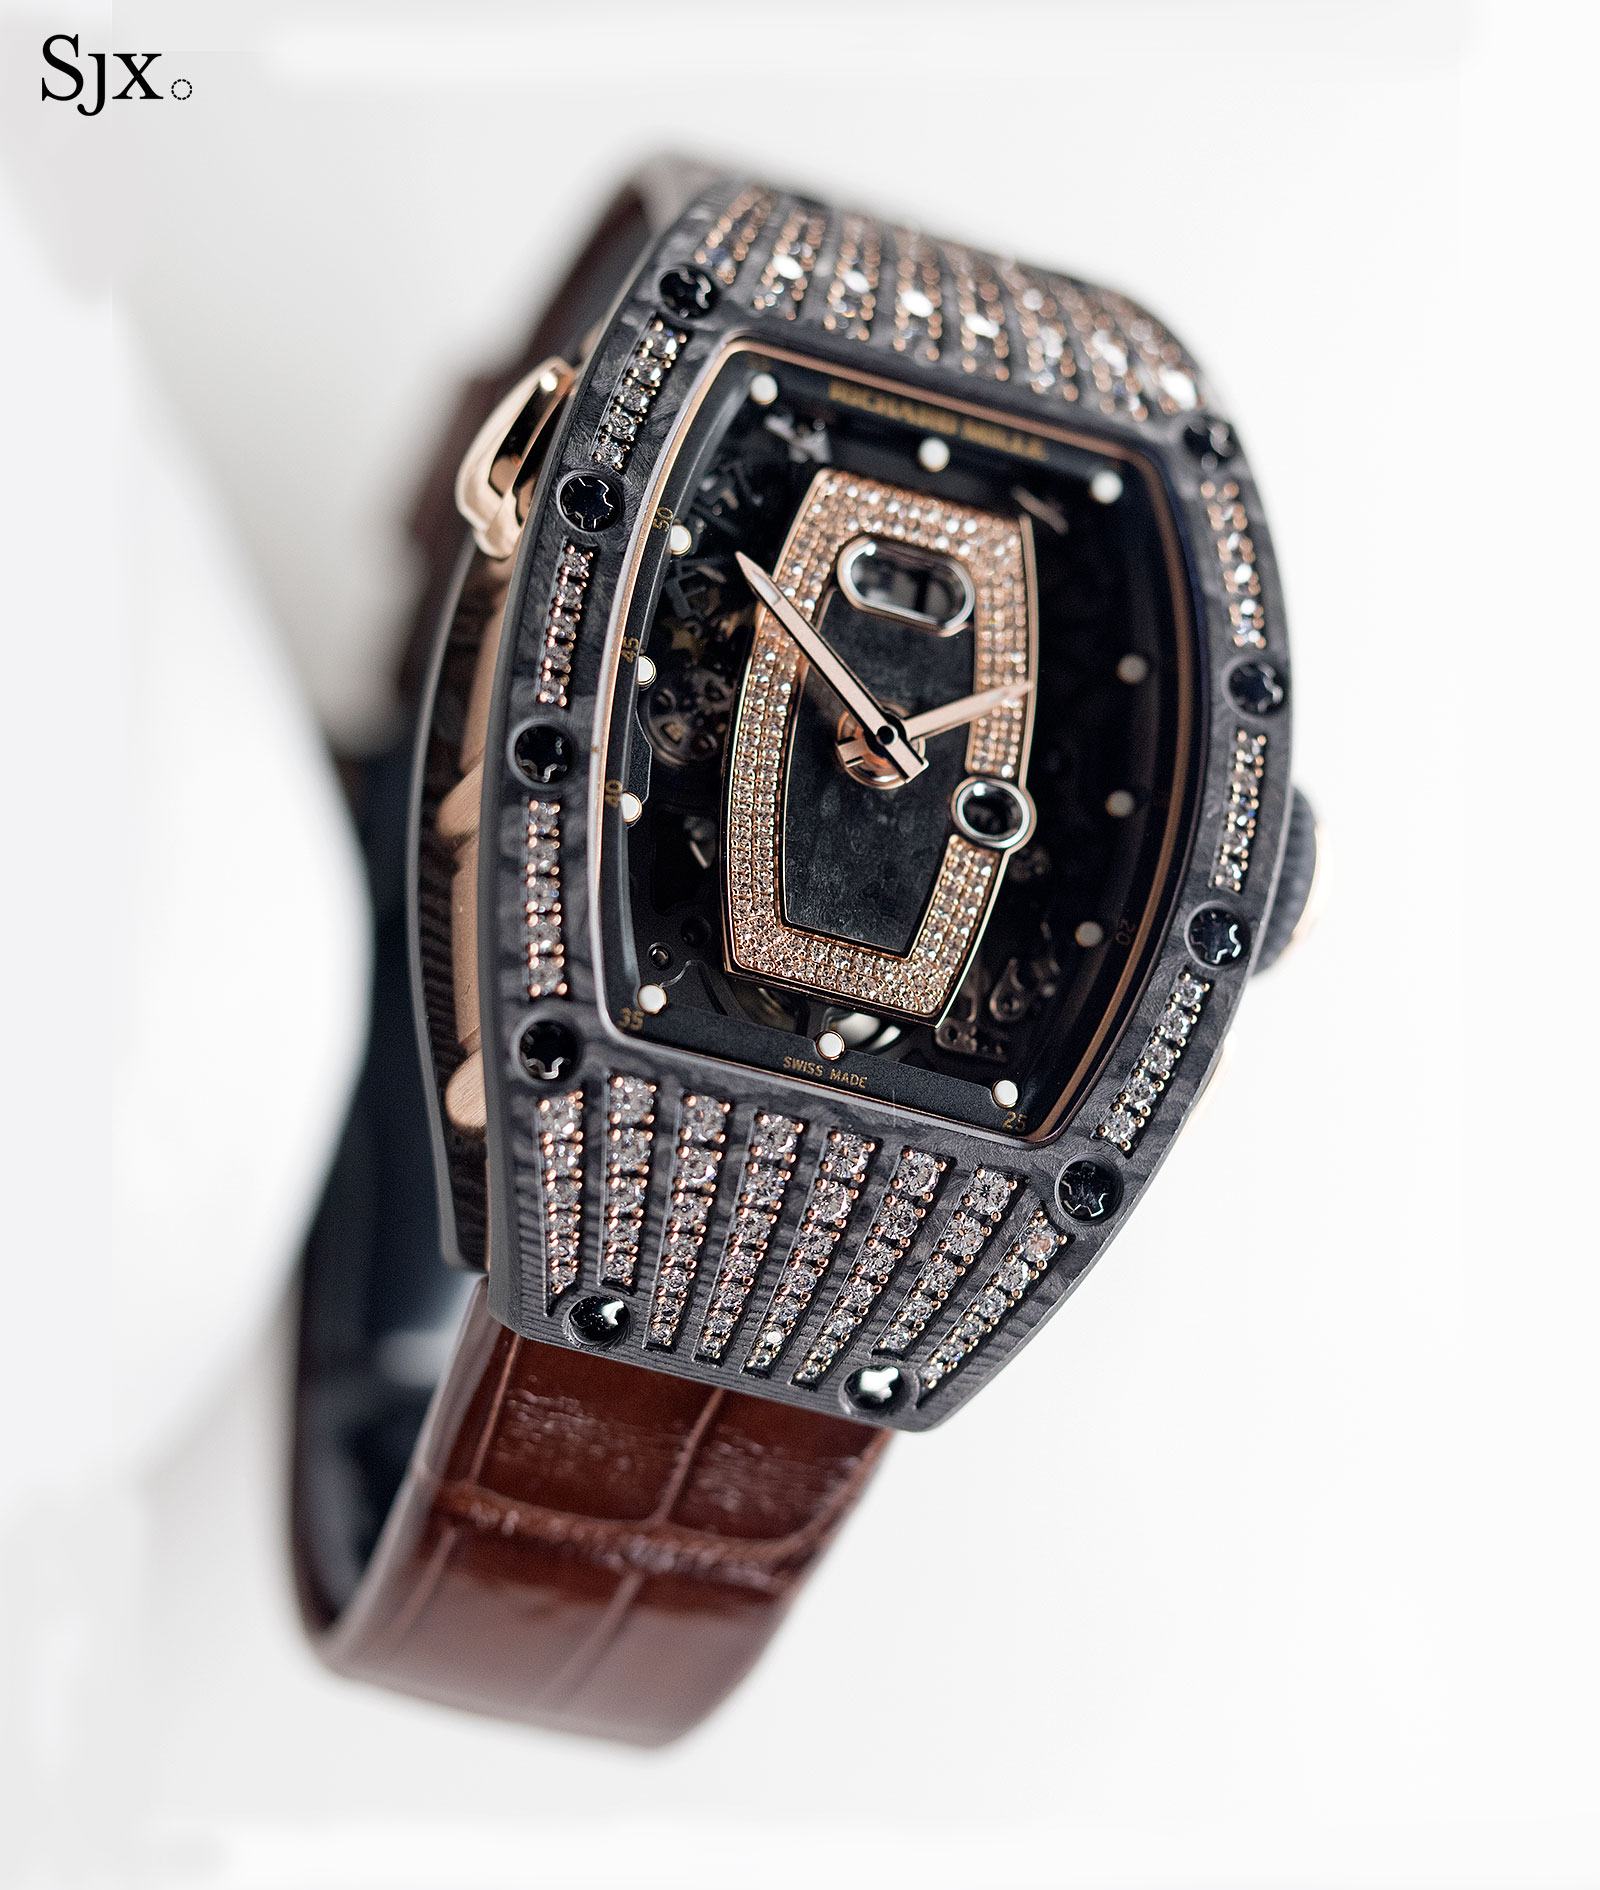 Richard Mille RM037 NTPT gem-set